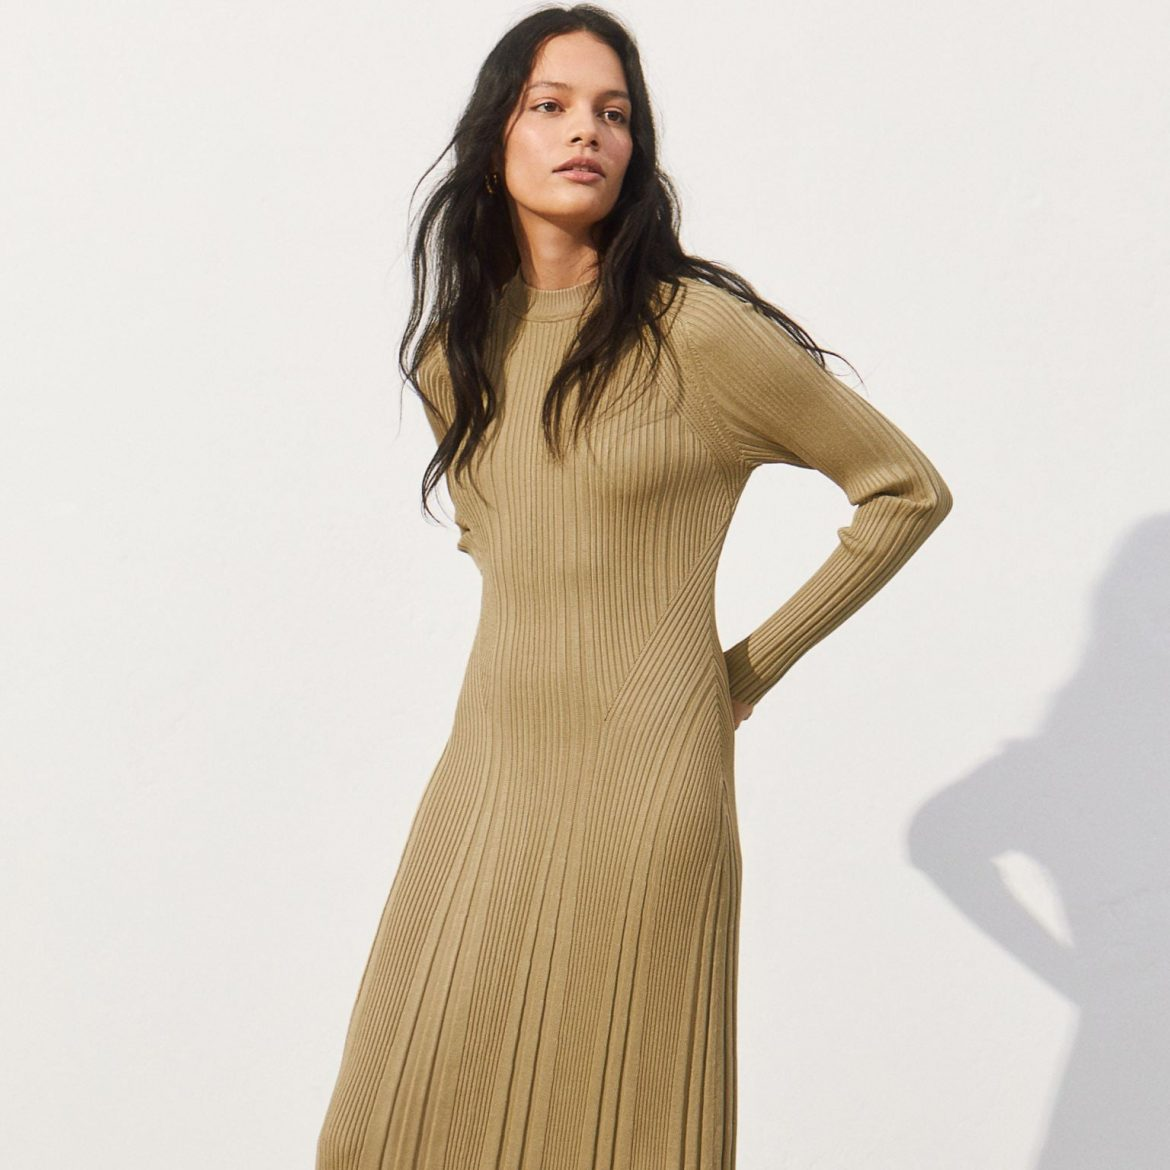 Purchase women's apparel from a reputable fashion designer